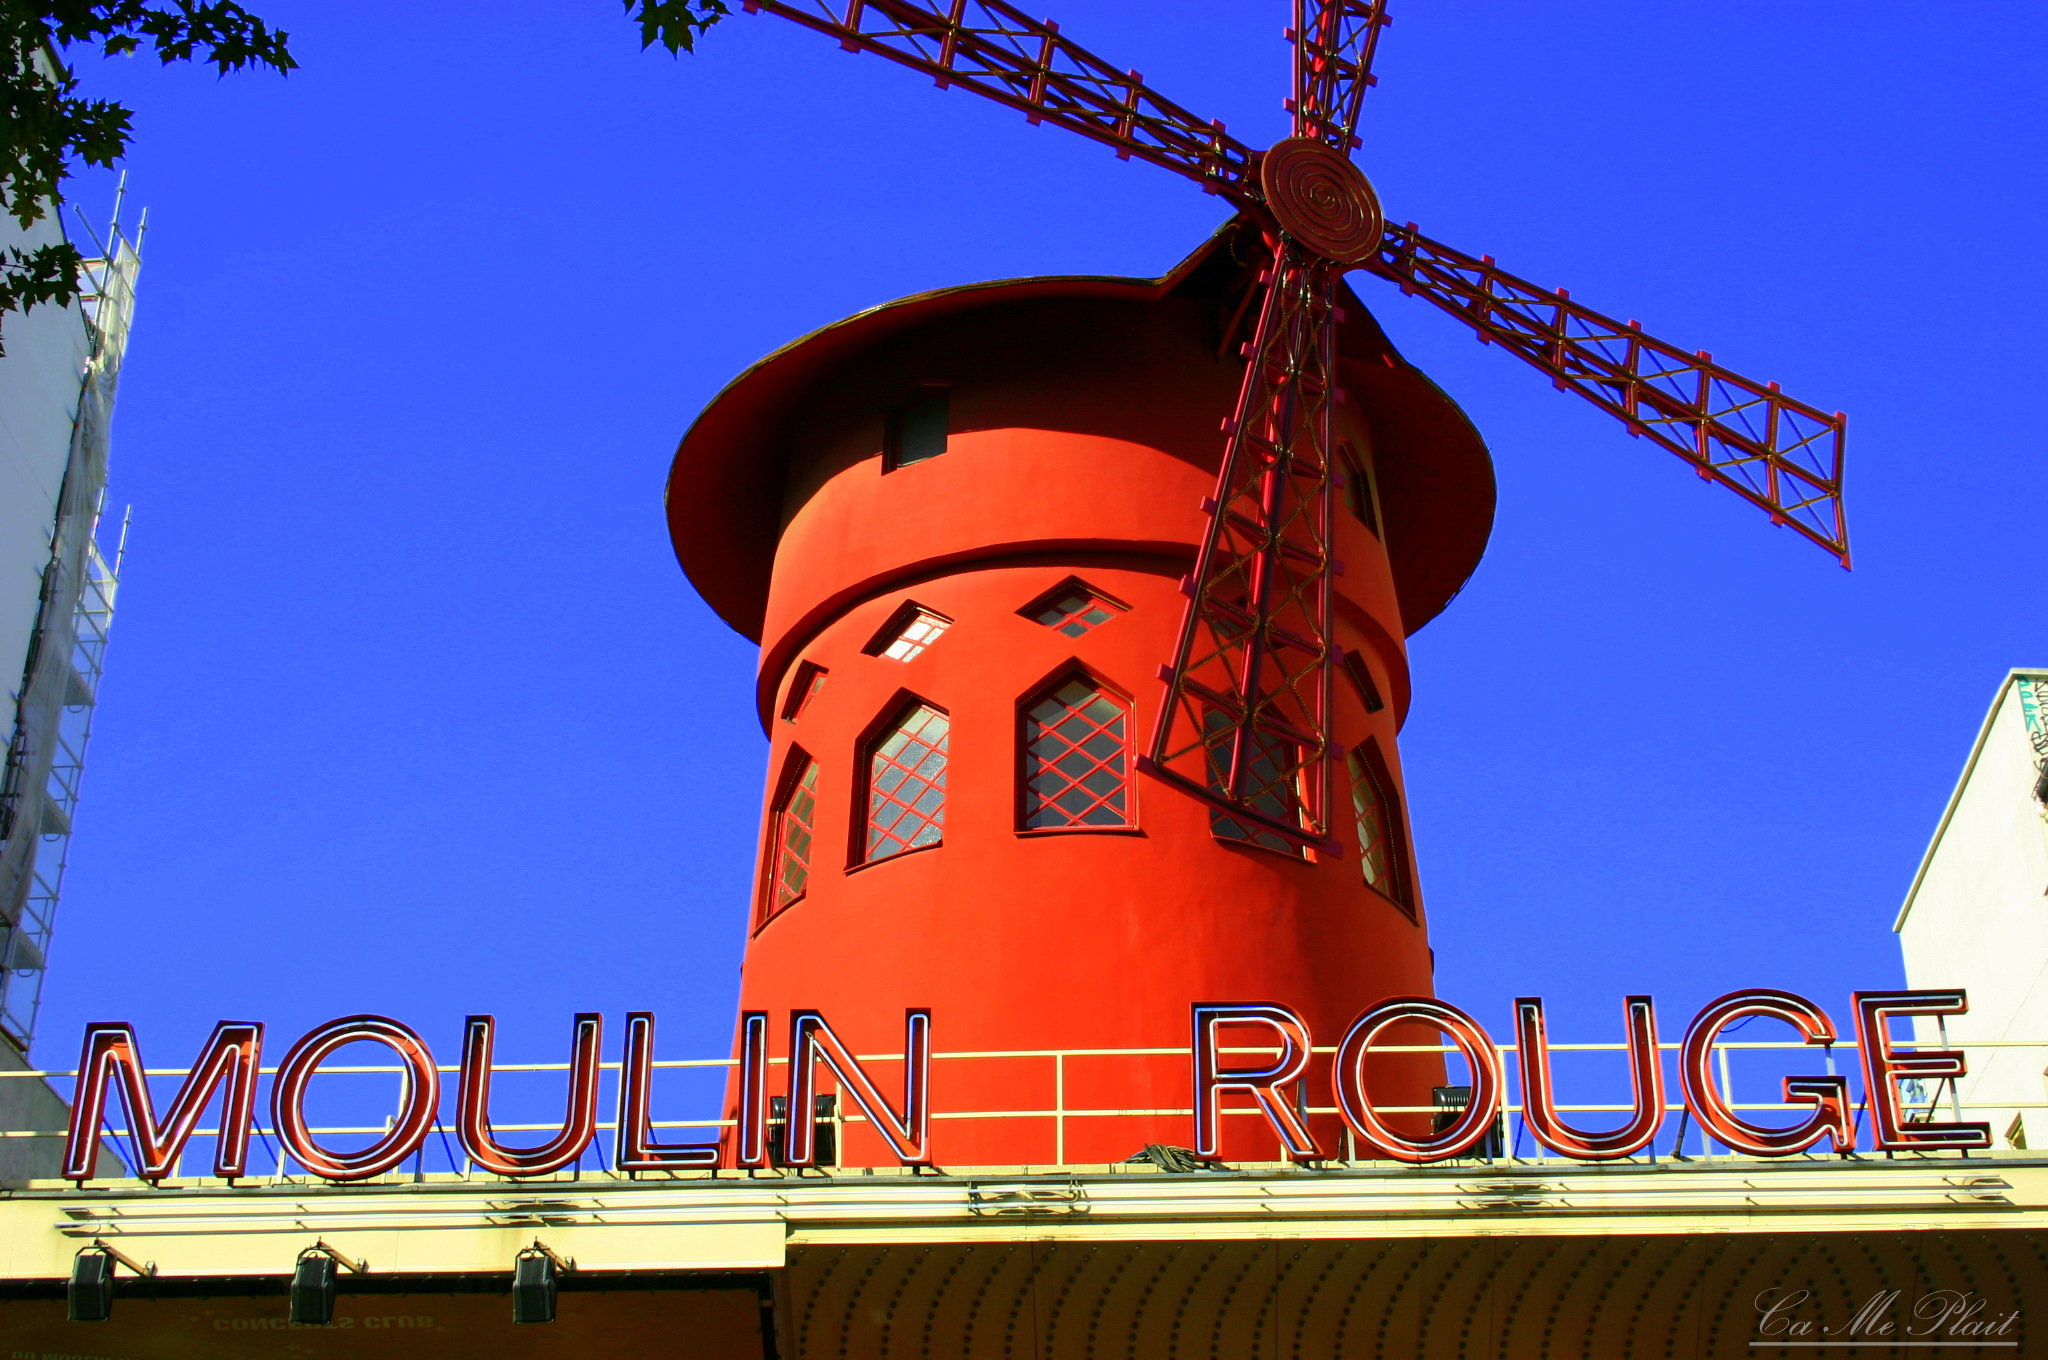 [PHOTO DU JOUR] # 95 Moulin Rouge